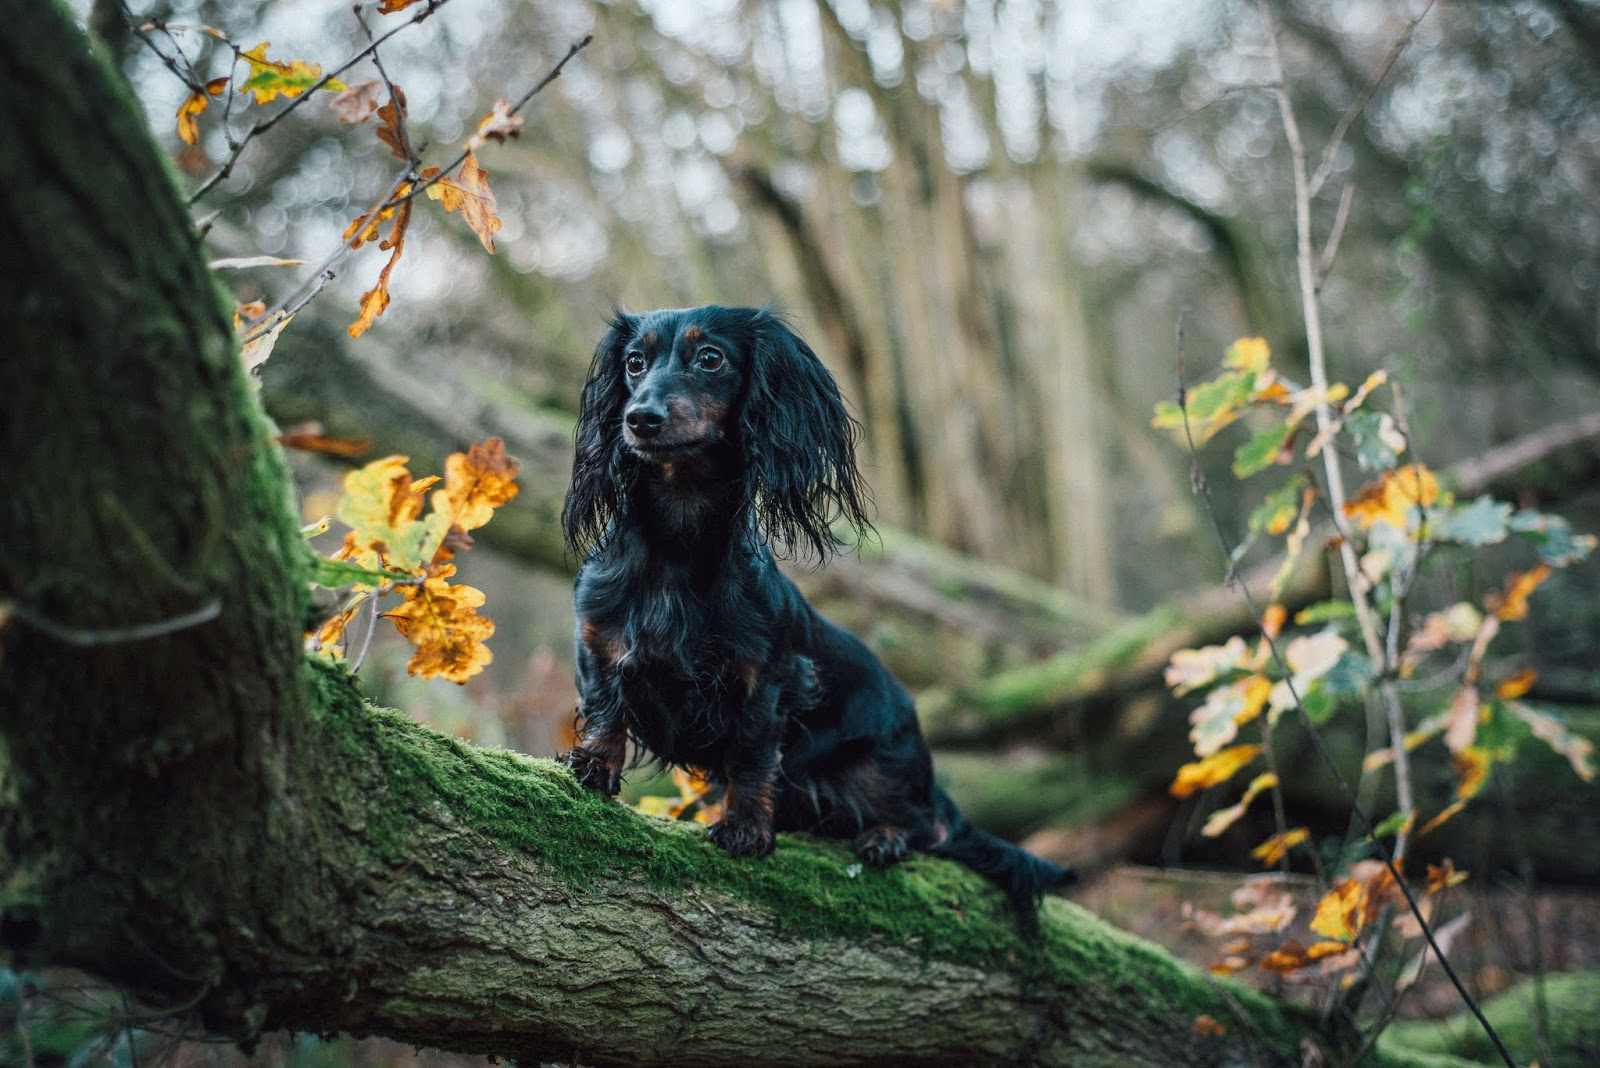 dachshund cocker spaniel on leafy tree liquidgrain liquid grain